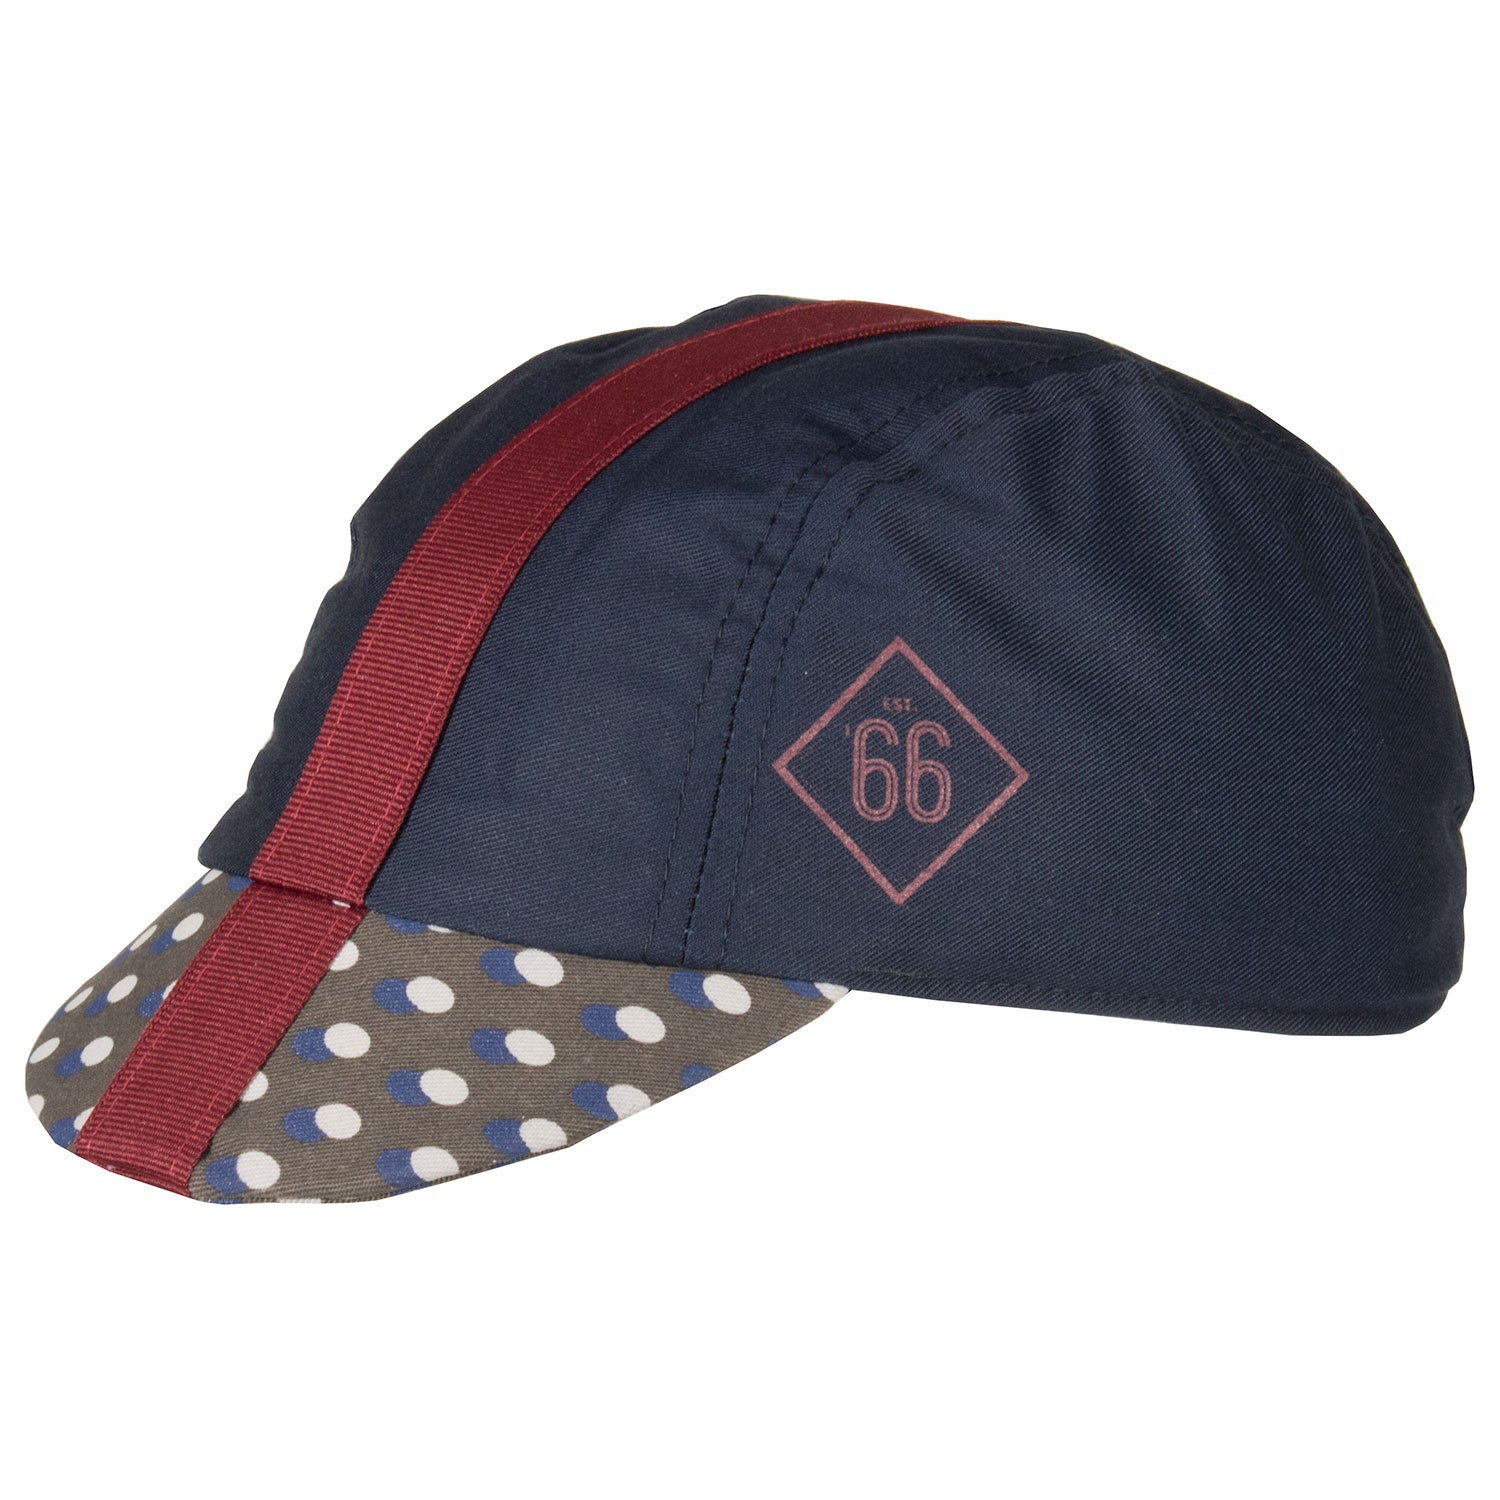 Six6 Deep Blue/Fig Cycling Cap